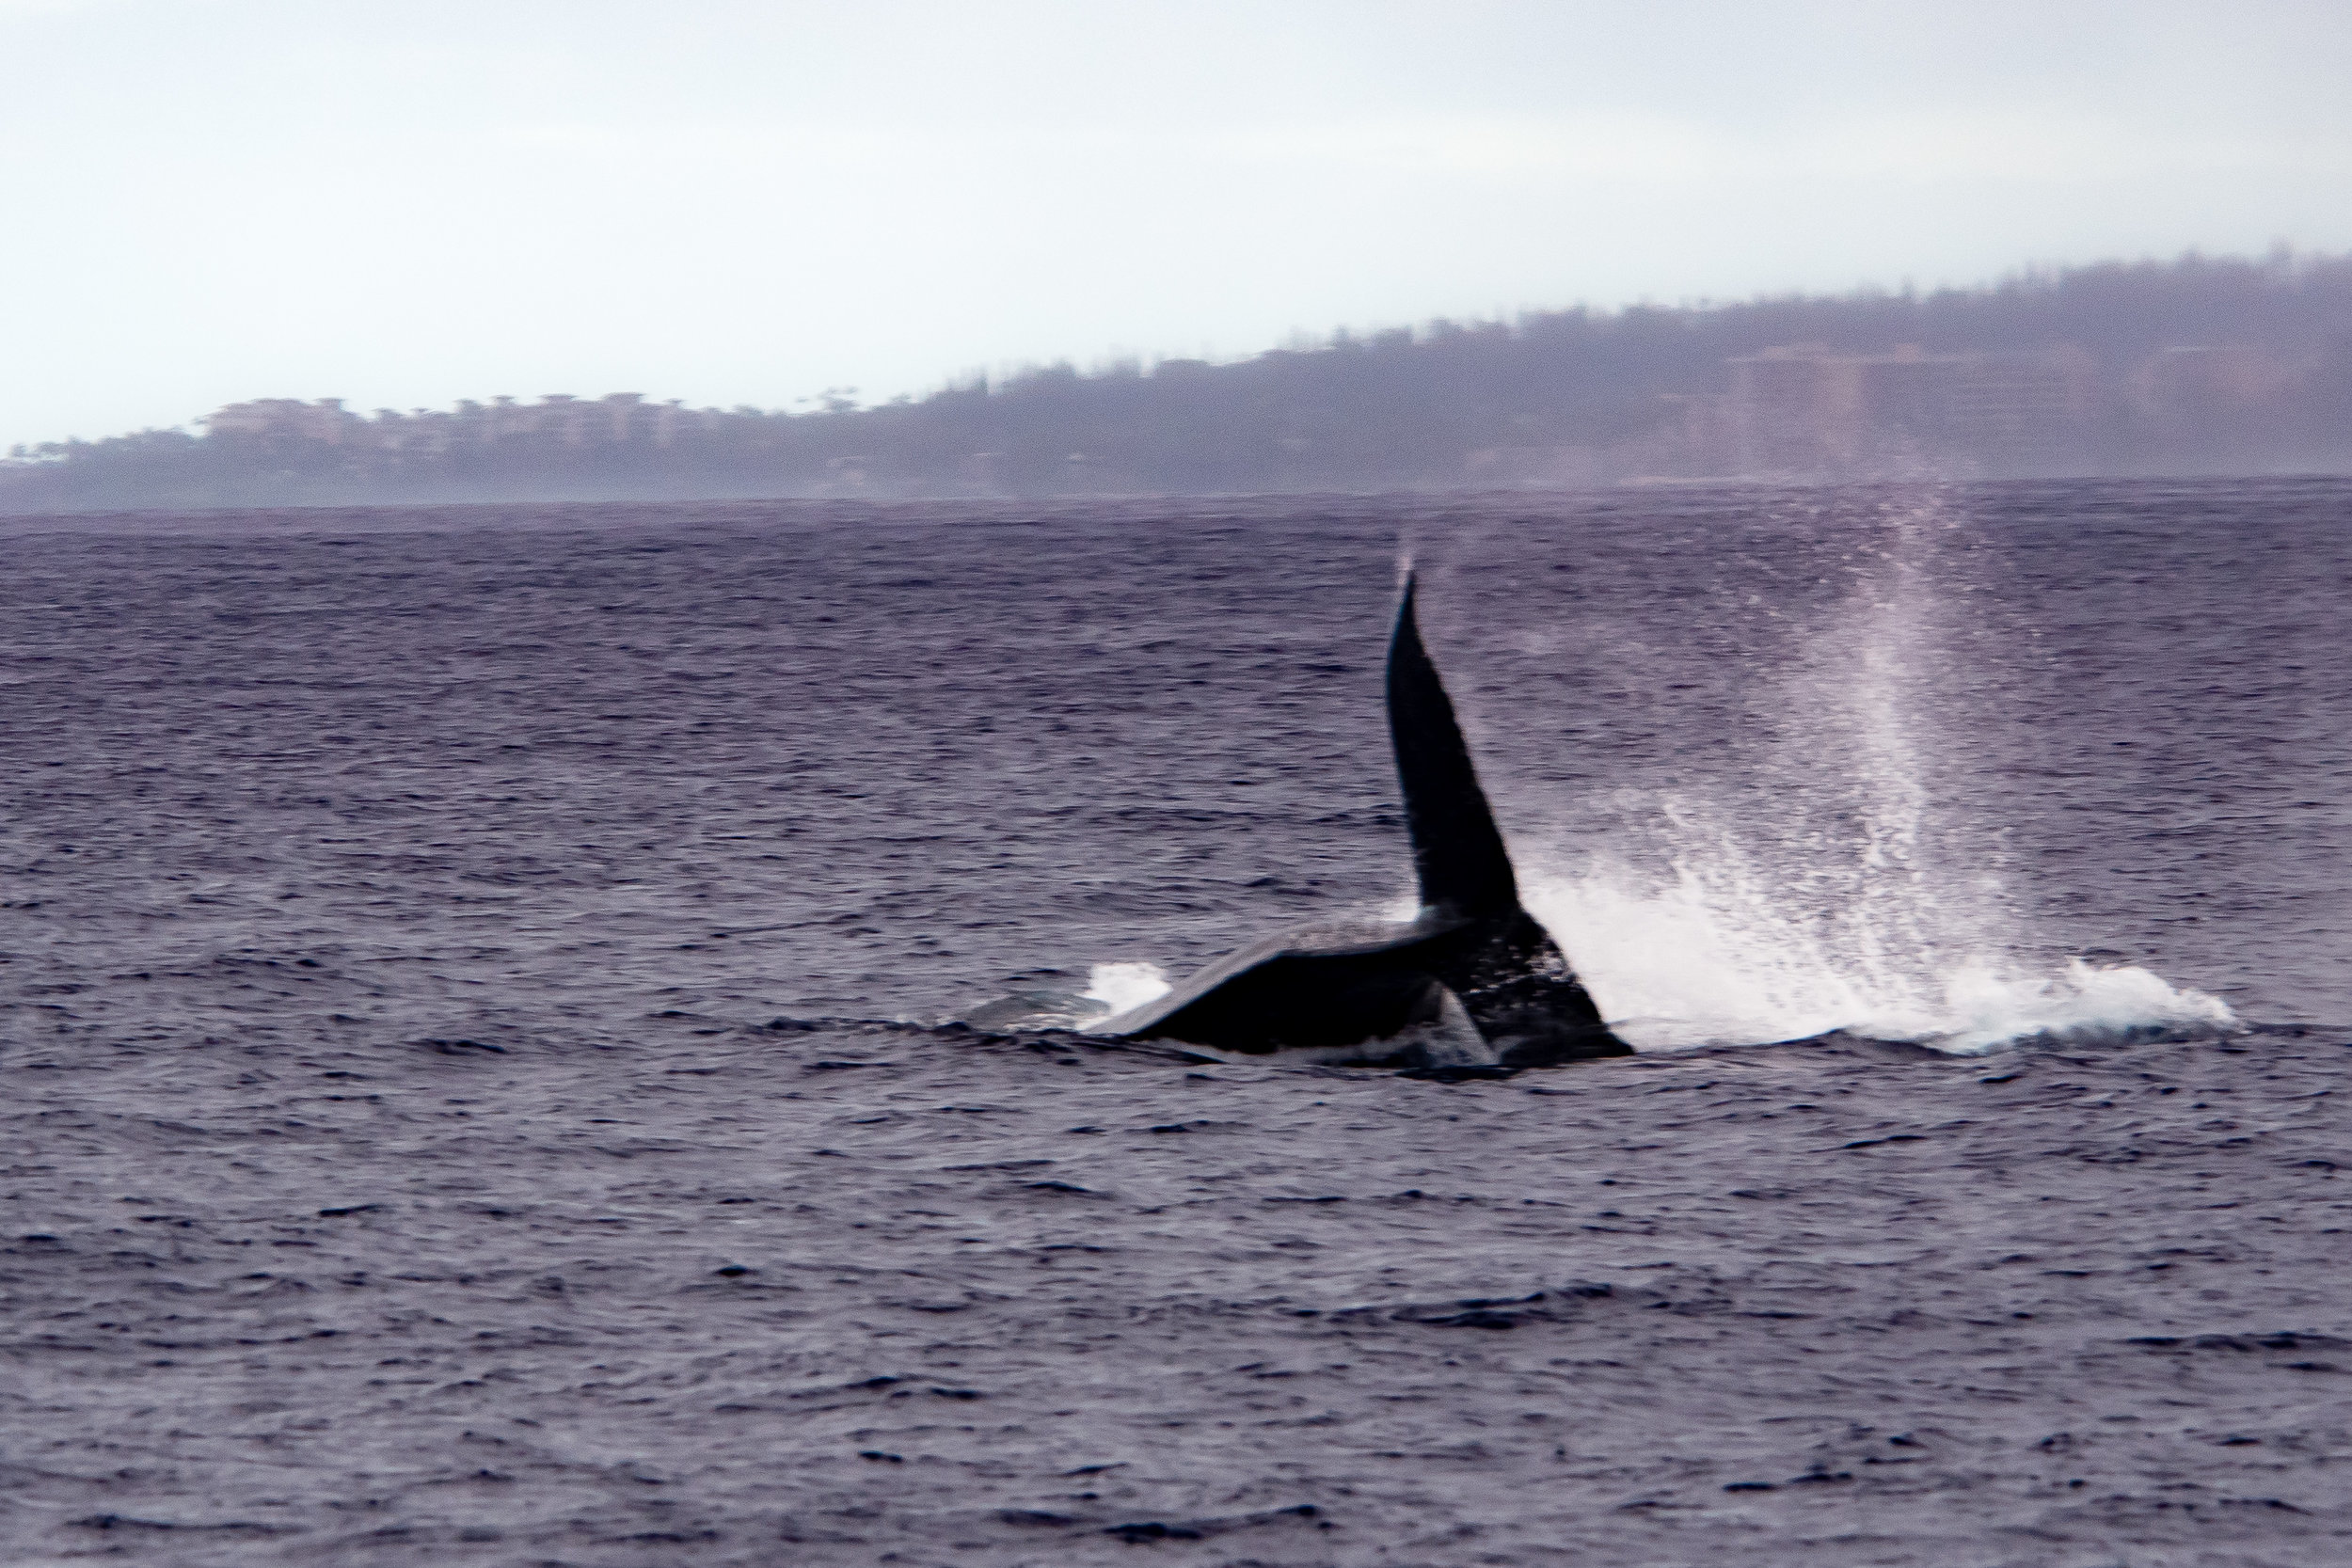 Fin Slap Whale-Notice the hotels on the beach in the background.